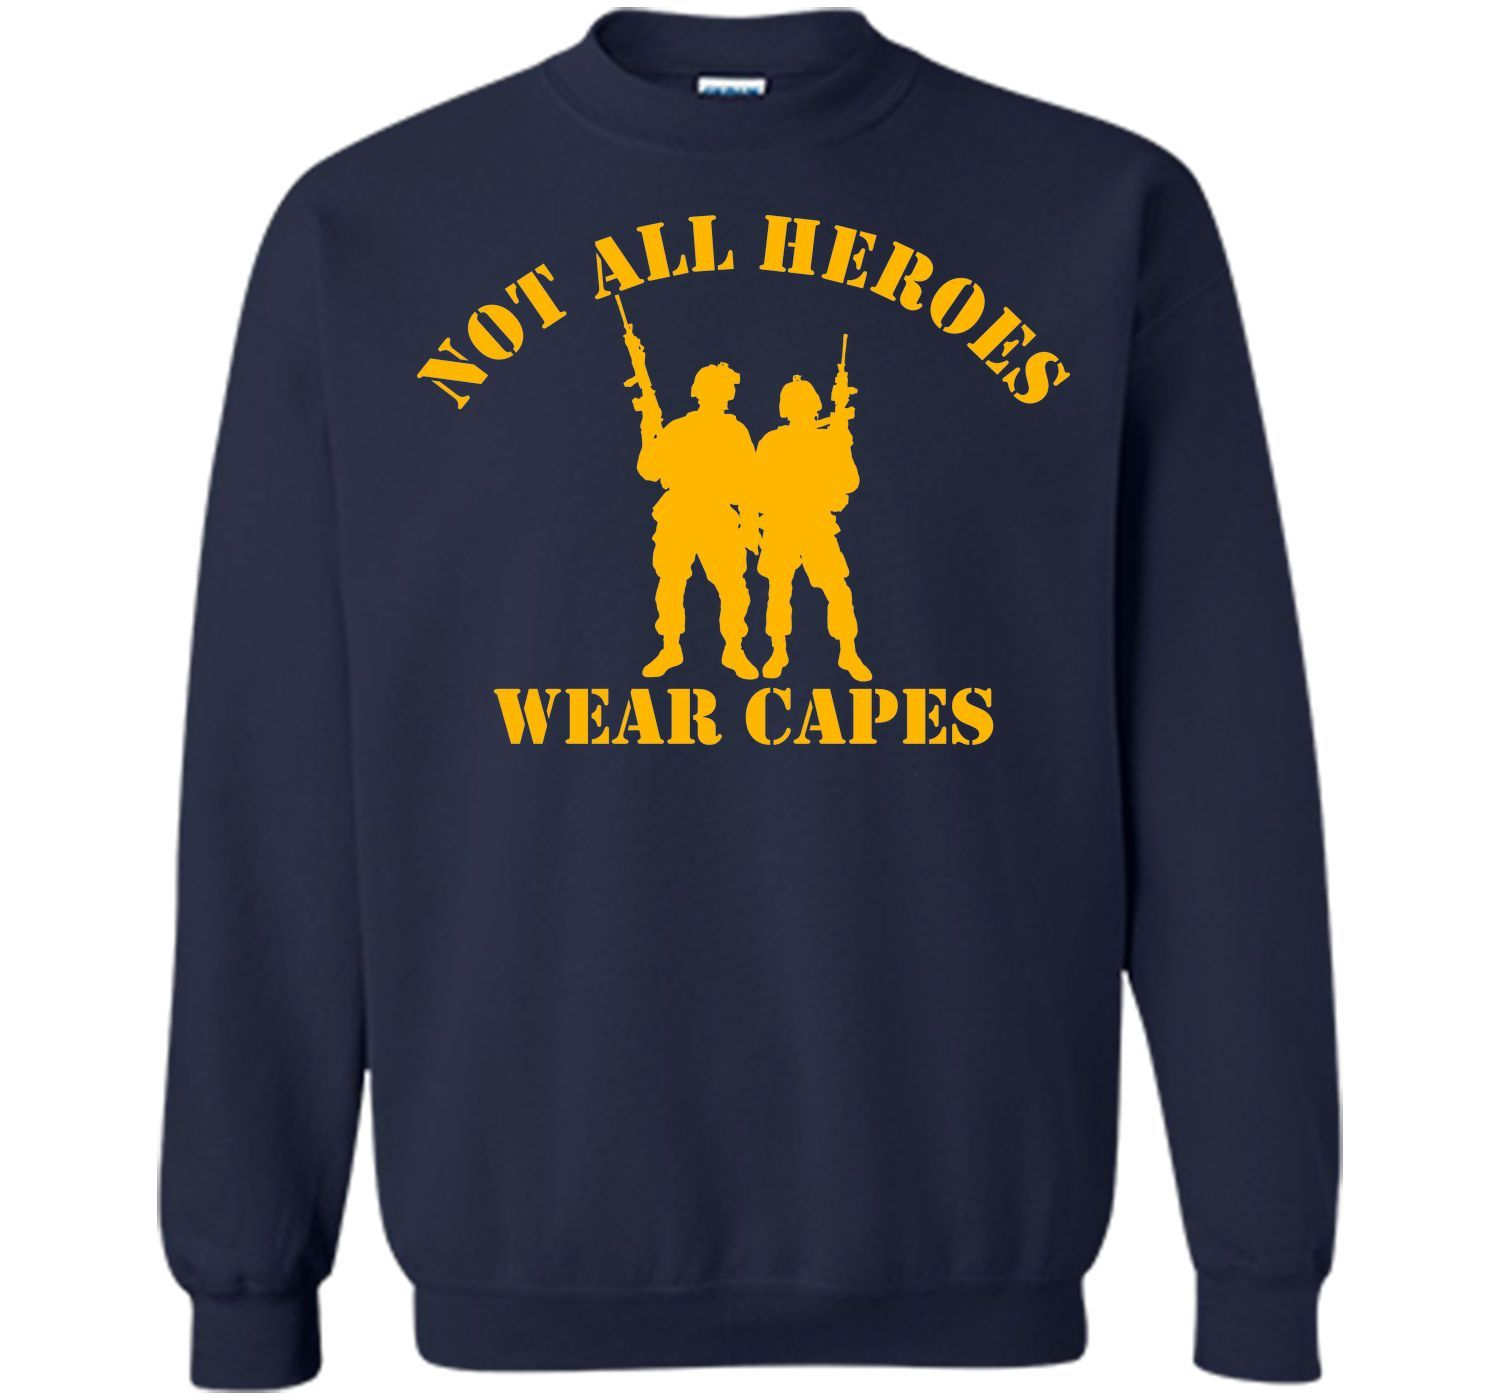 Not All Heroes Wear Capes (gold) T-Shirt